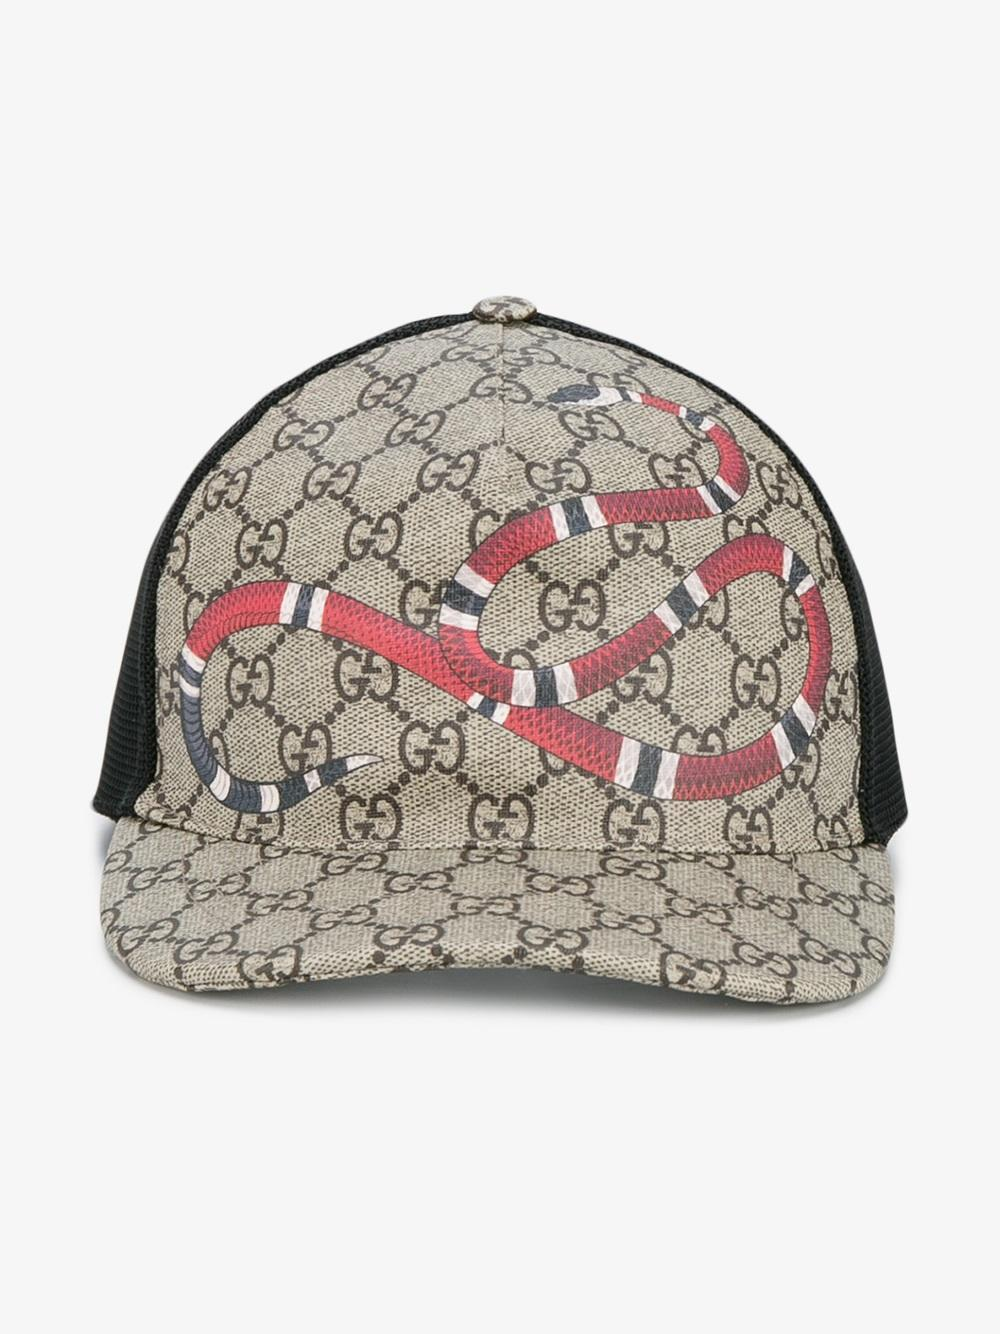 5a5a475f94c Gucci Snake Print Gg Supreme Baseball Cap in Brown for Men - Lyst